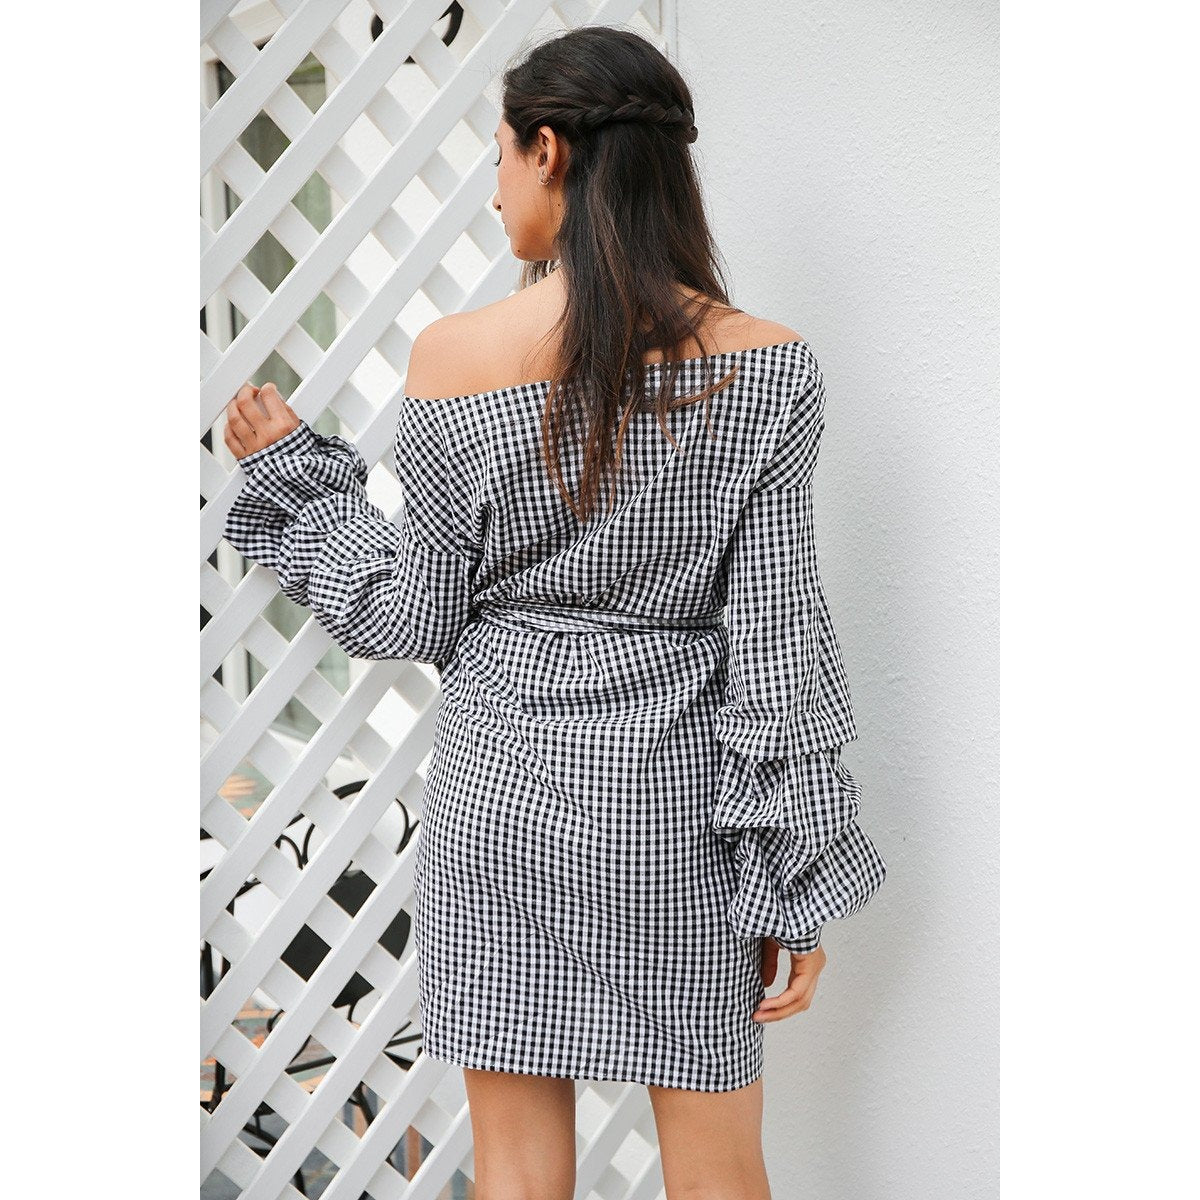 The Leilani Dress is a wrap style mini dress with cold shoulder style design, long lantern sleeves, and a front tie sash. Striped & gingham plaid prints.